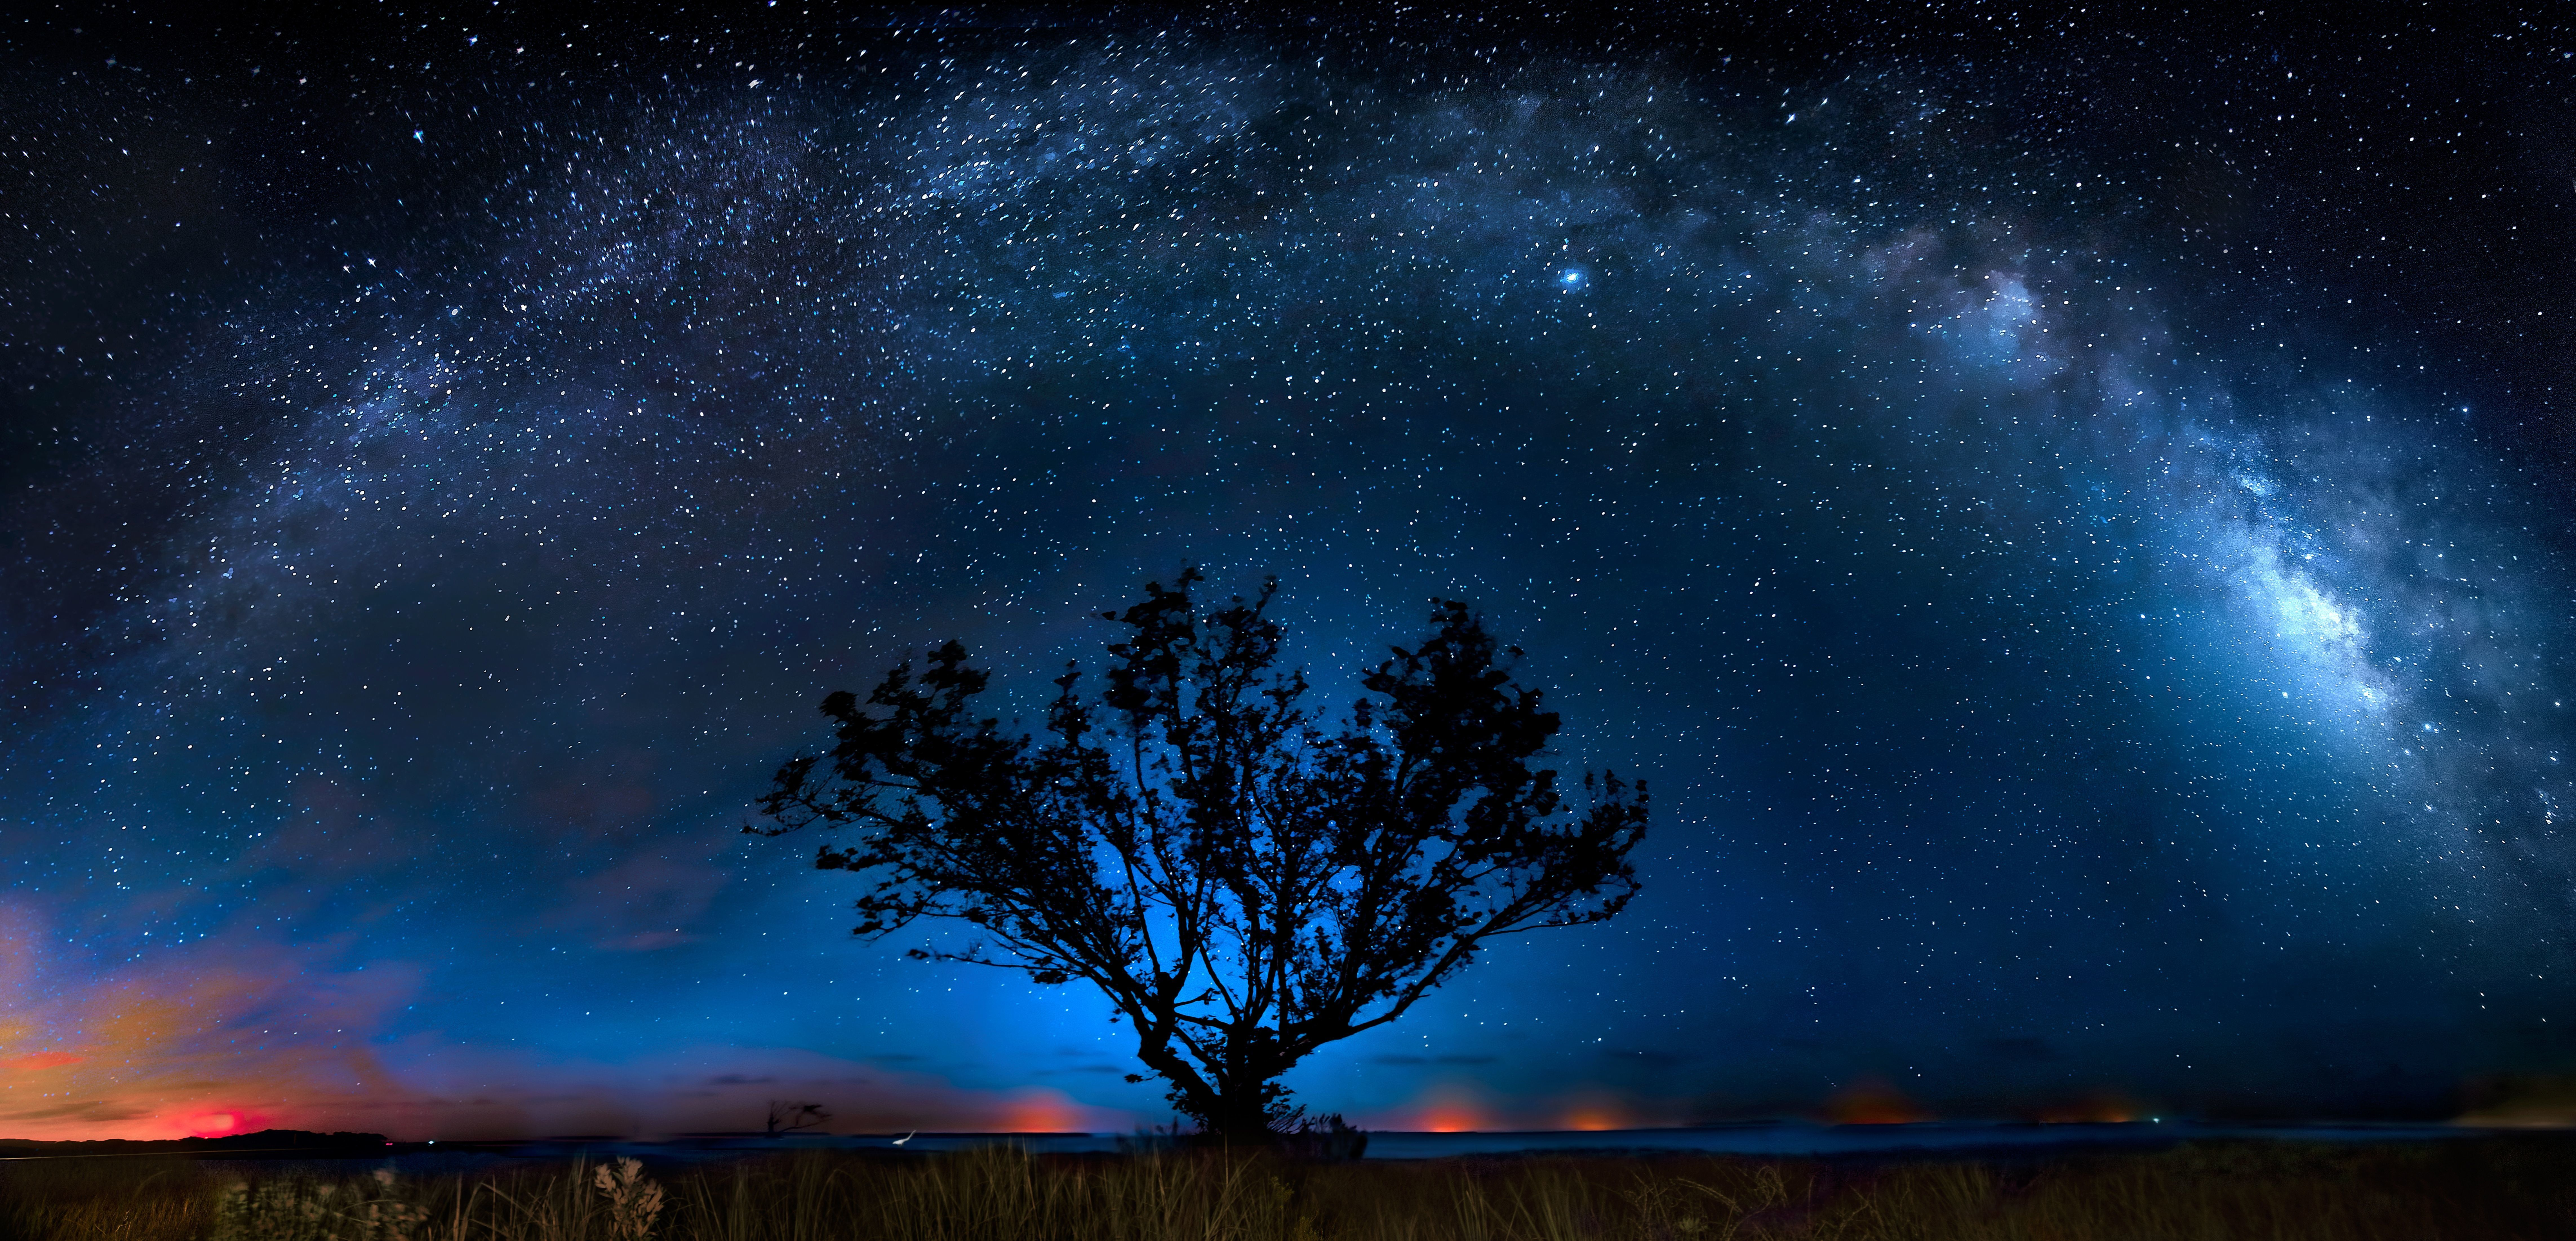 The full arc of the Milky Way required 14 vertical exposures stitched together for this panorama at Everglades National Park,